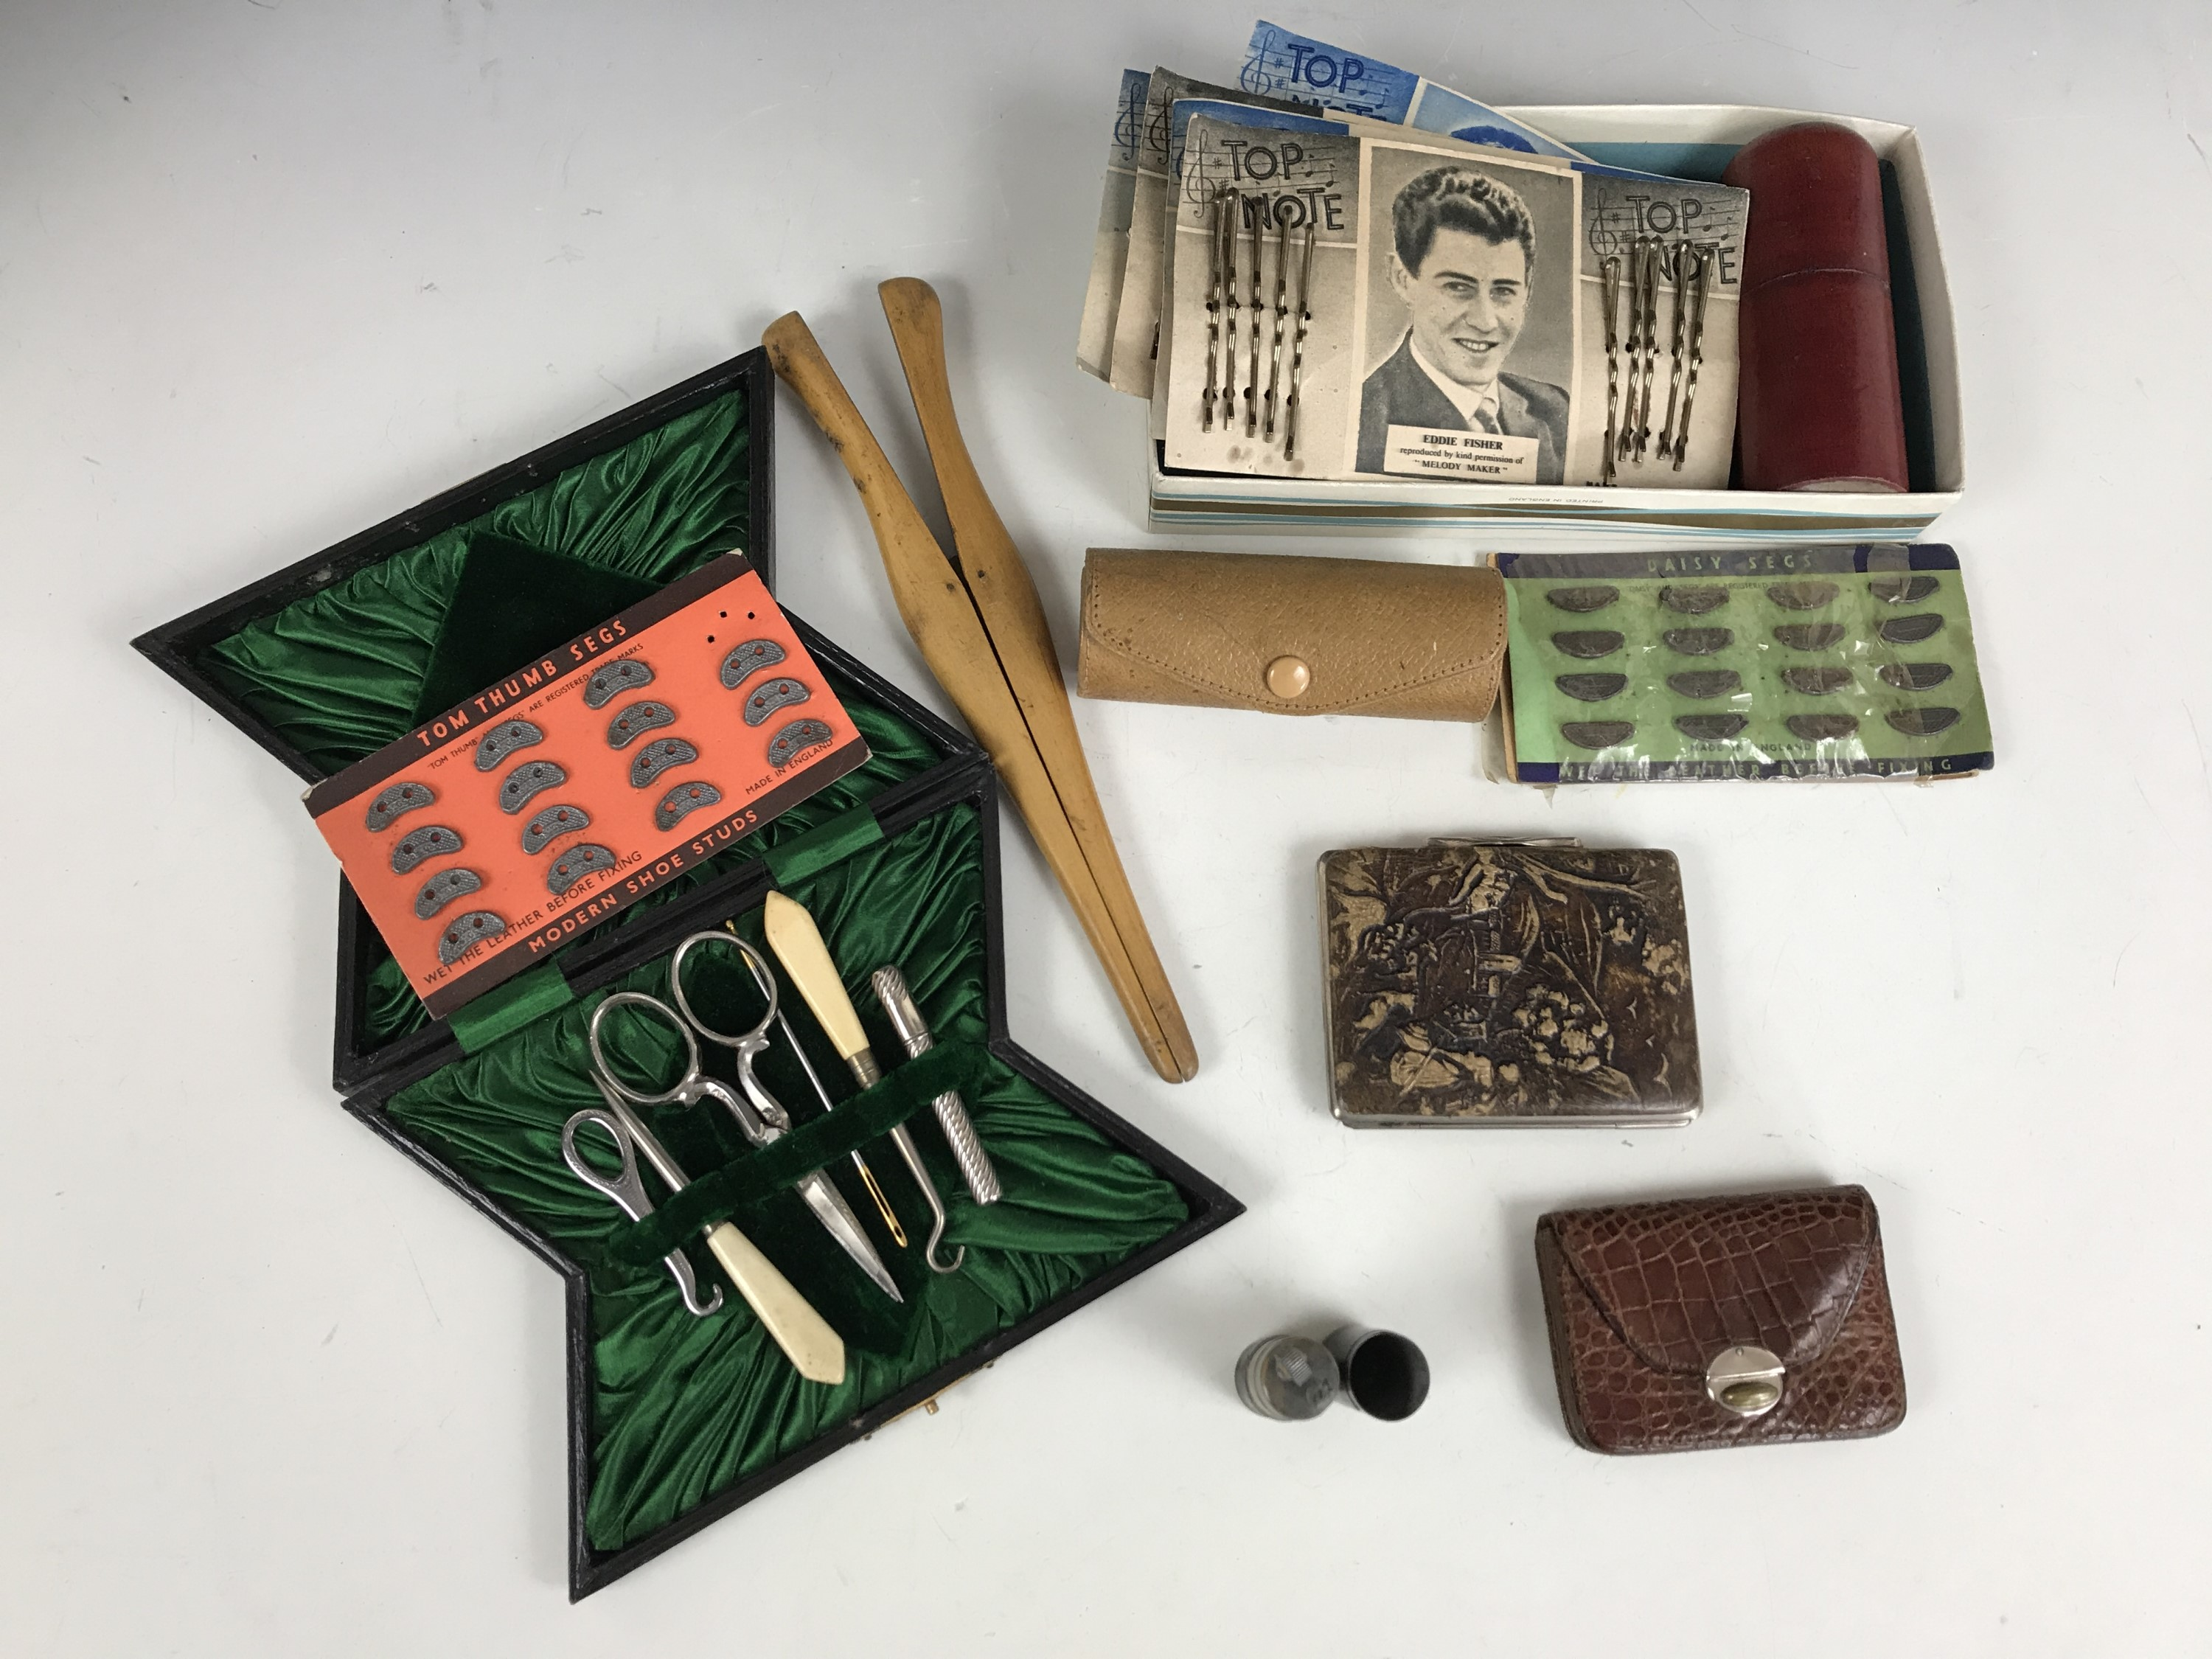 Lot 22 - Collectors' items including a late 19th Century cased sewing set, an early 20th Century travel